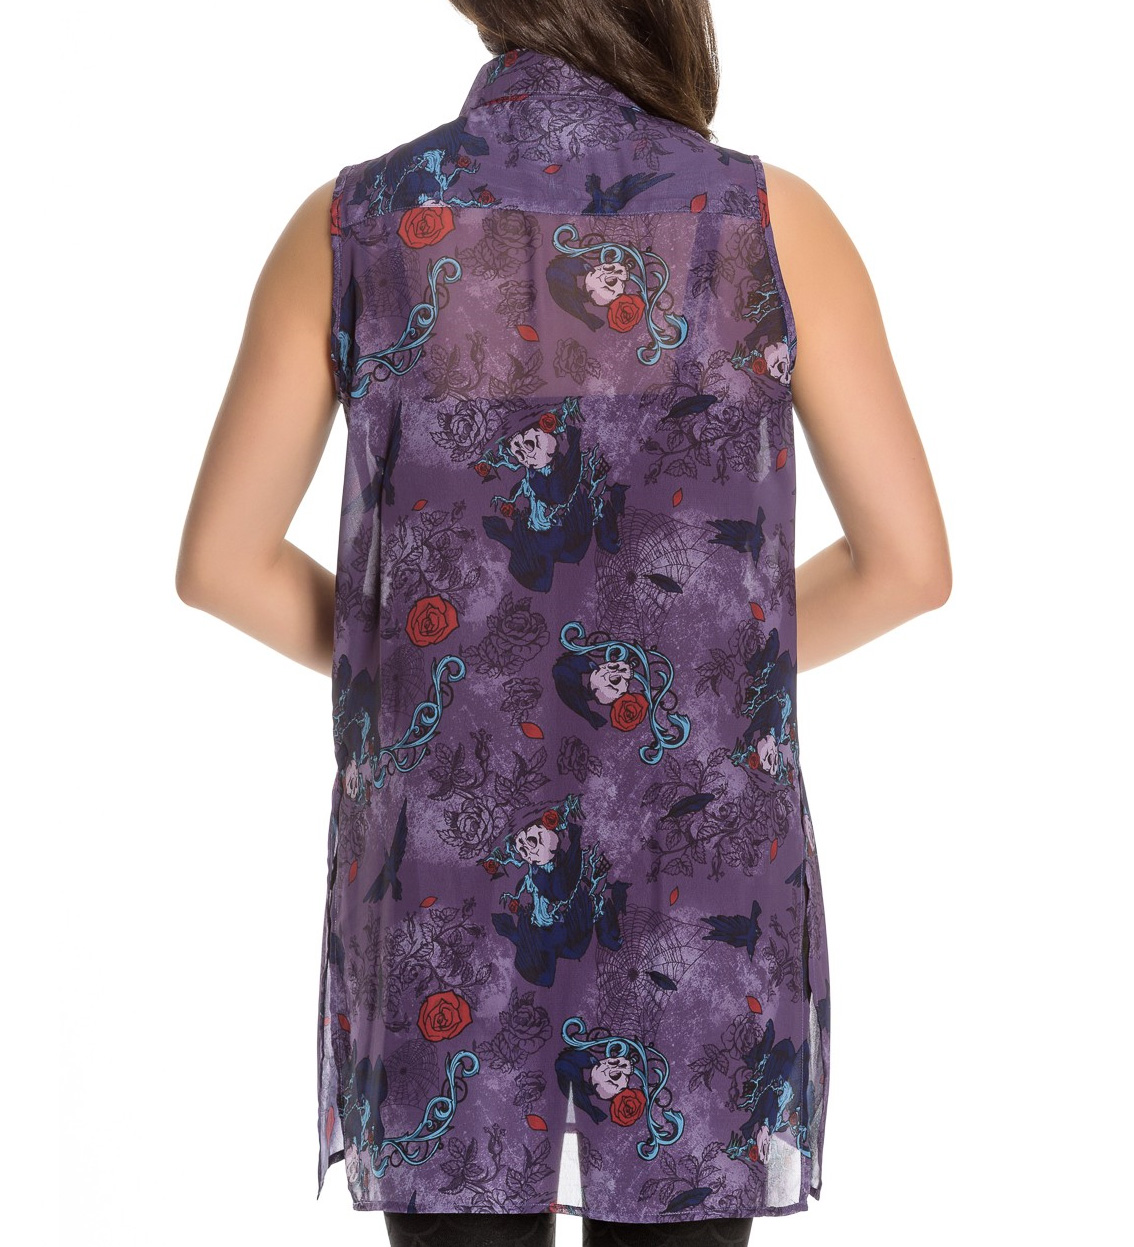 Hell-Bunny-Shirt-Top-Goth-Punk-Roses-Skulls-RAVEN-Purple-Blouse-All-Sizes thumbnail 5